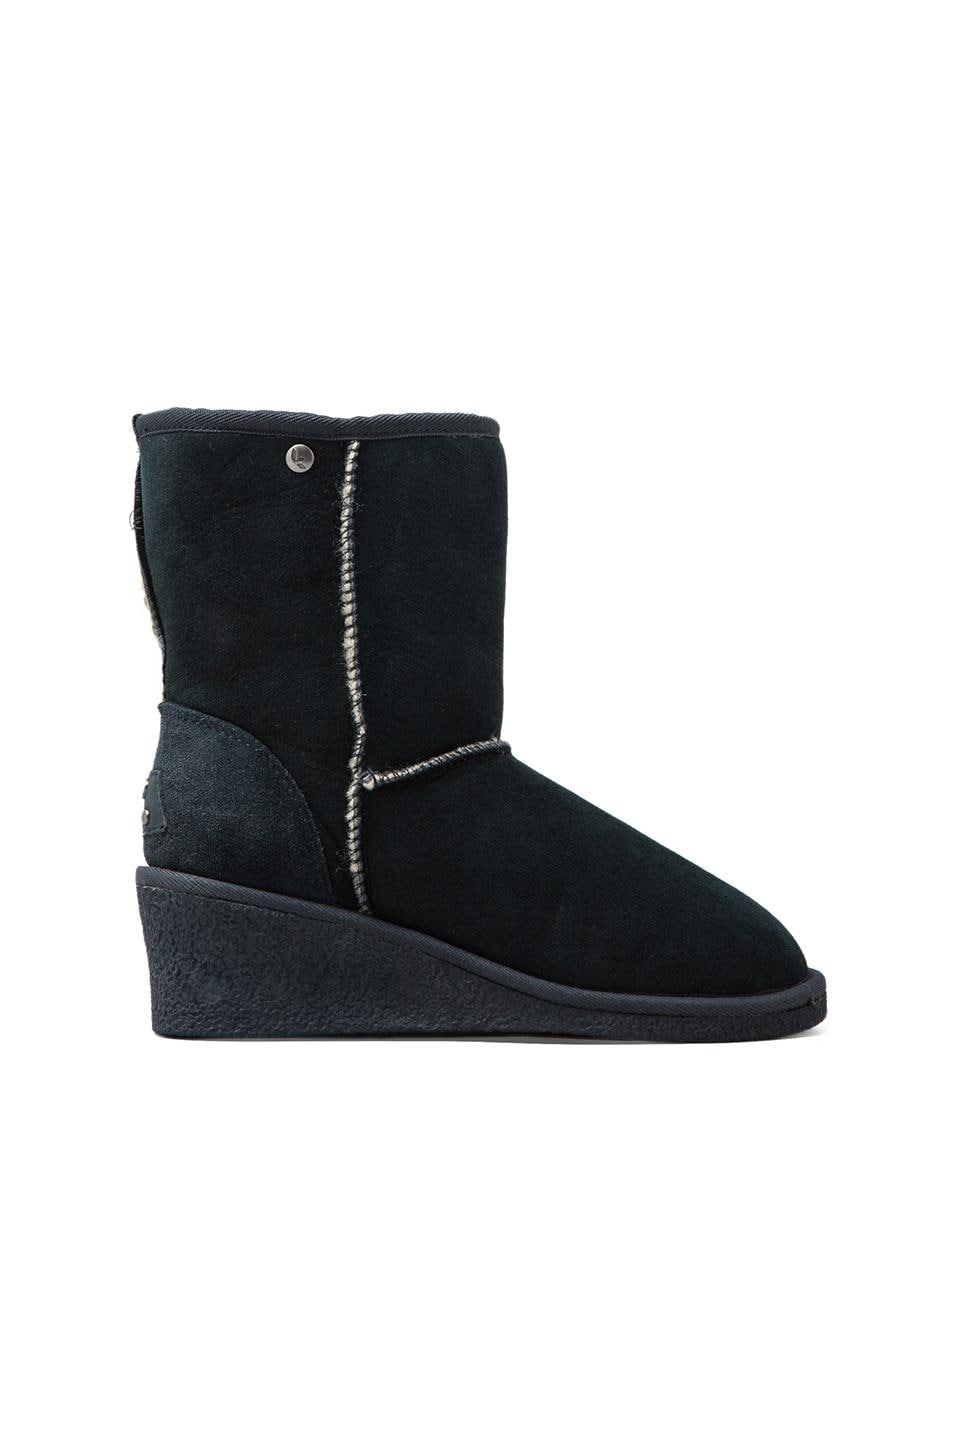 Koolaburra Savannah II with Twinface Sheepskin in Navy